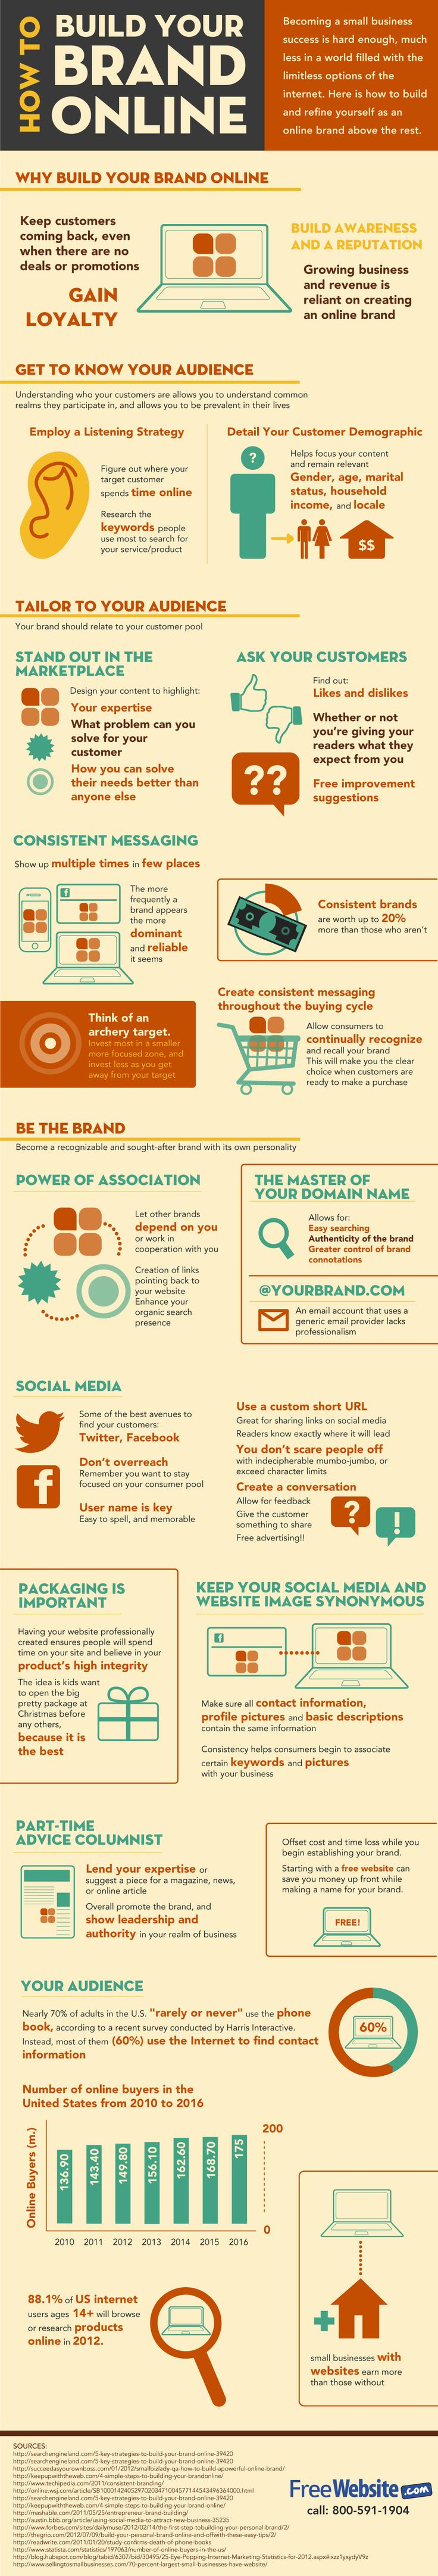 9 Powerful Ways To Build Your Brand Online Presence [infographic] ~ Digital Information World DeeDee                        Section;013